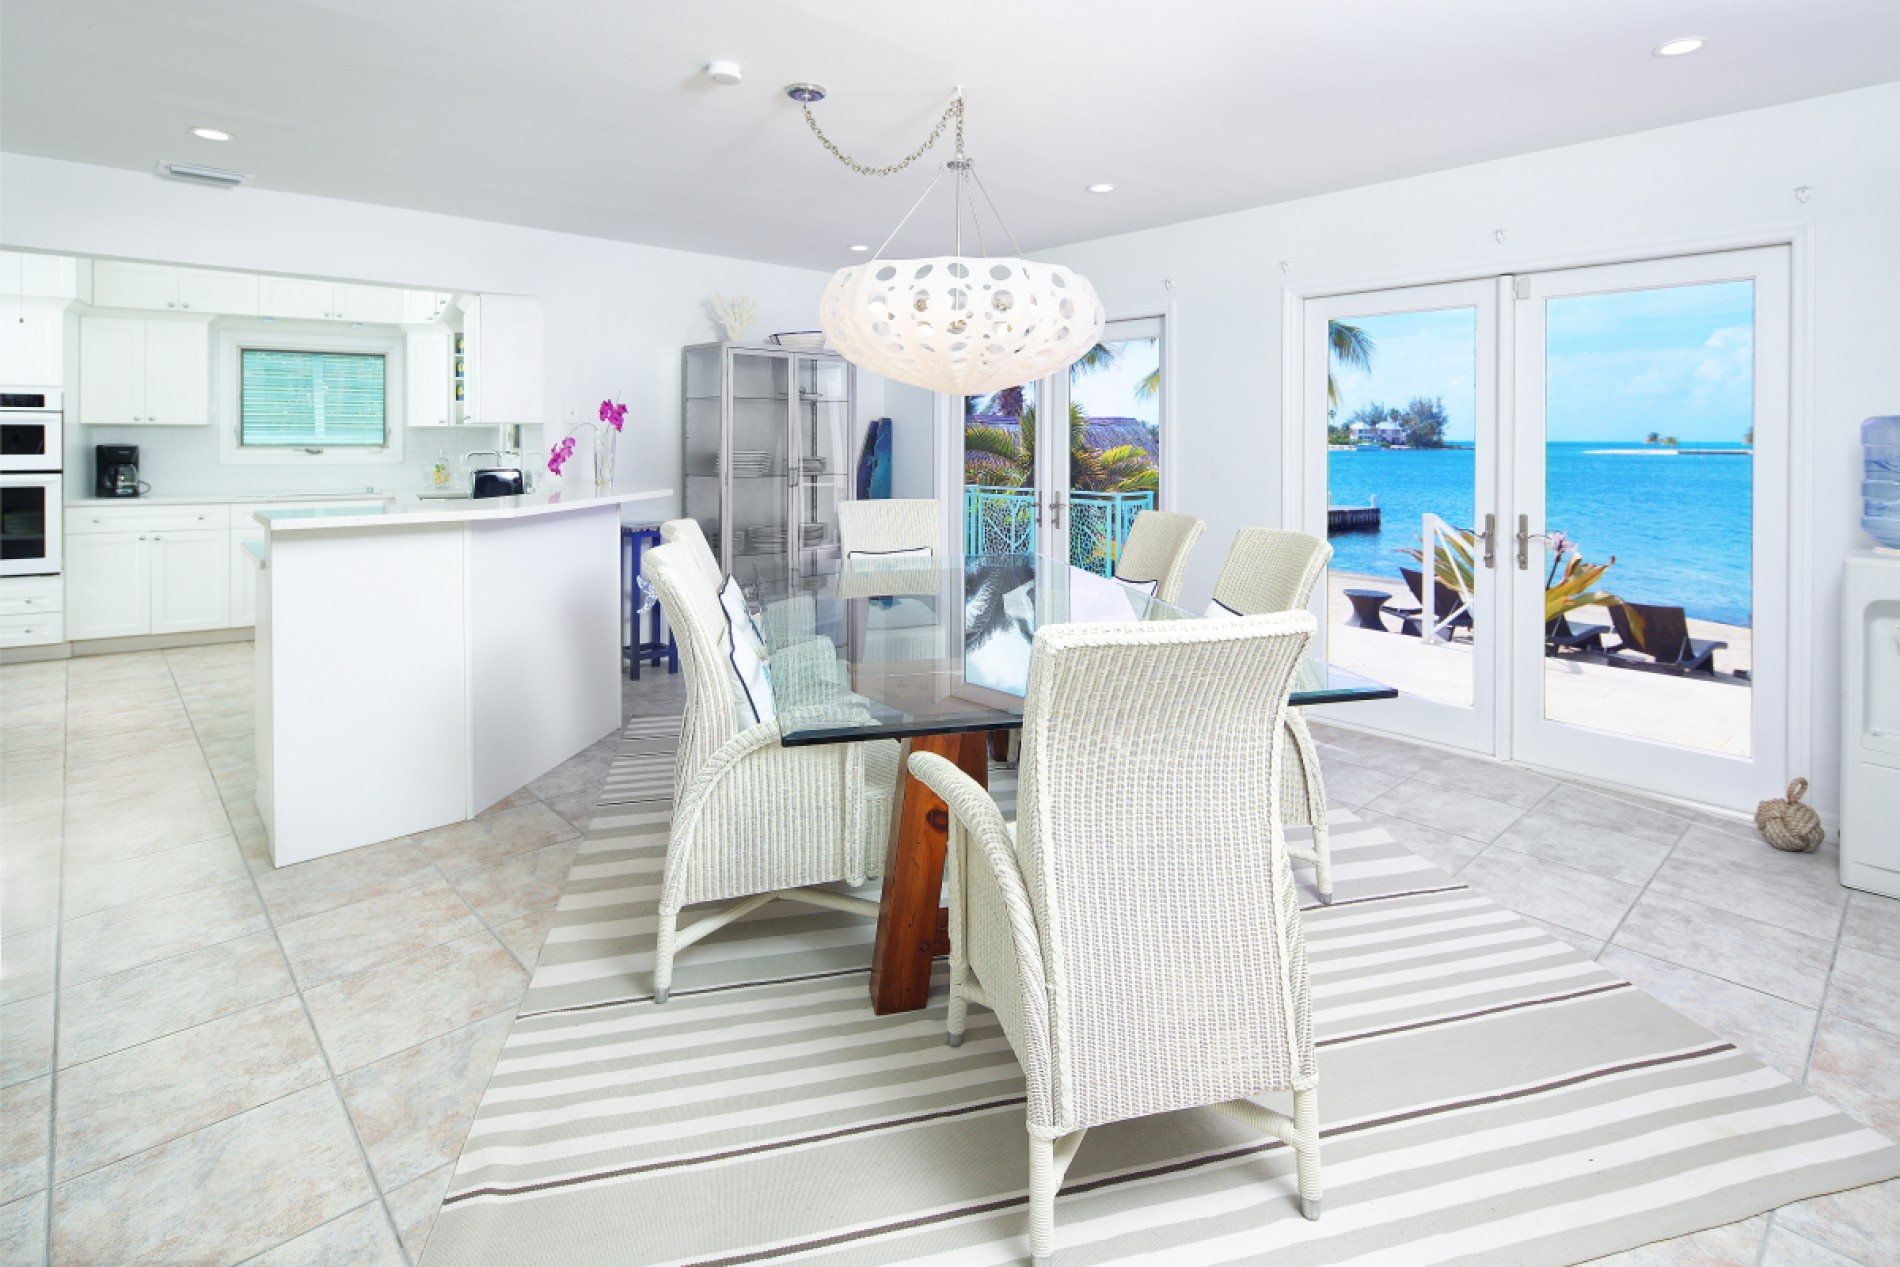 dcca5d576 Flip Flop Kai - 3 Bedrooms - Rum Point Cayman Kai